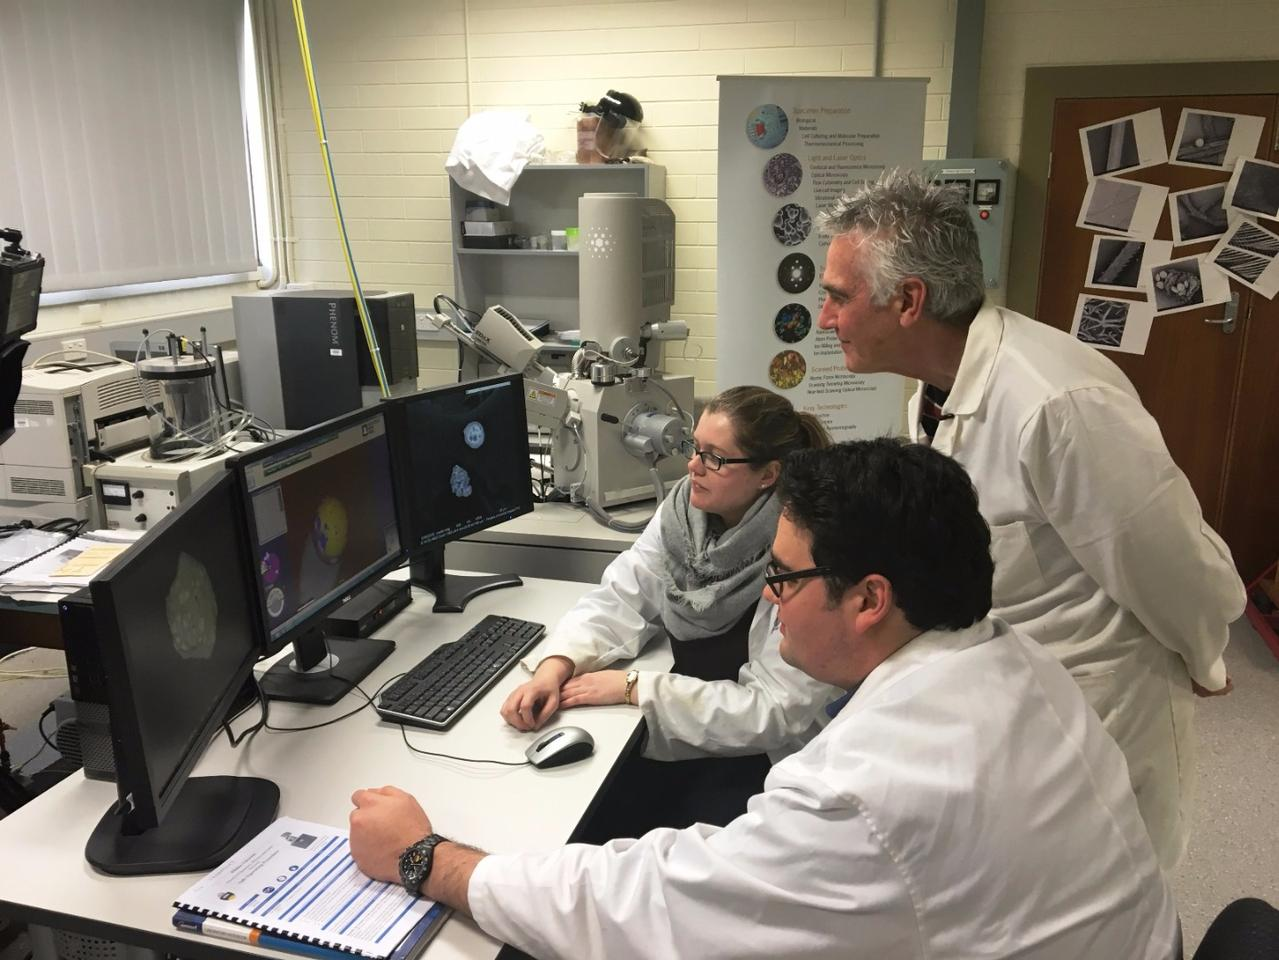 Professor Paul Kirkbride with his PhD students, Nick Lucas and Kelsey Seyfang, in their lab at Flinders University